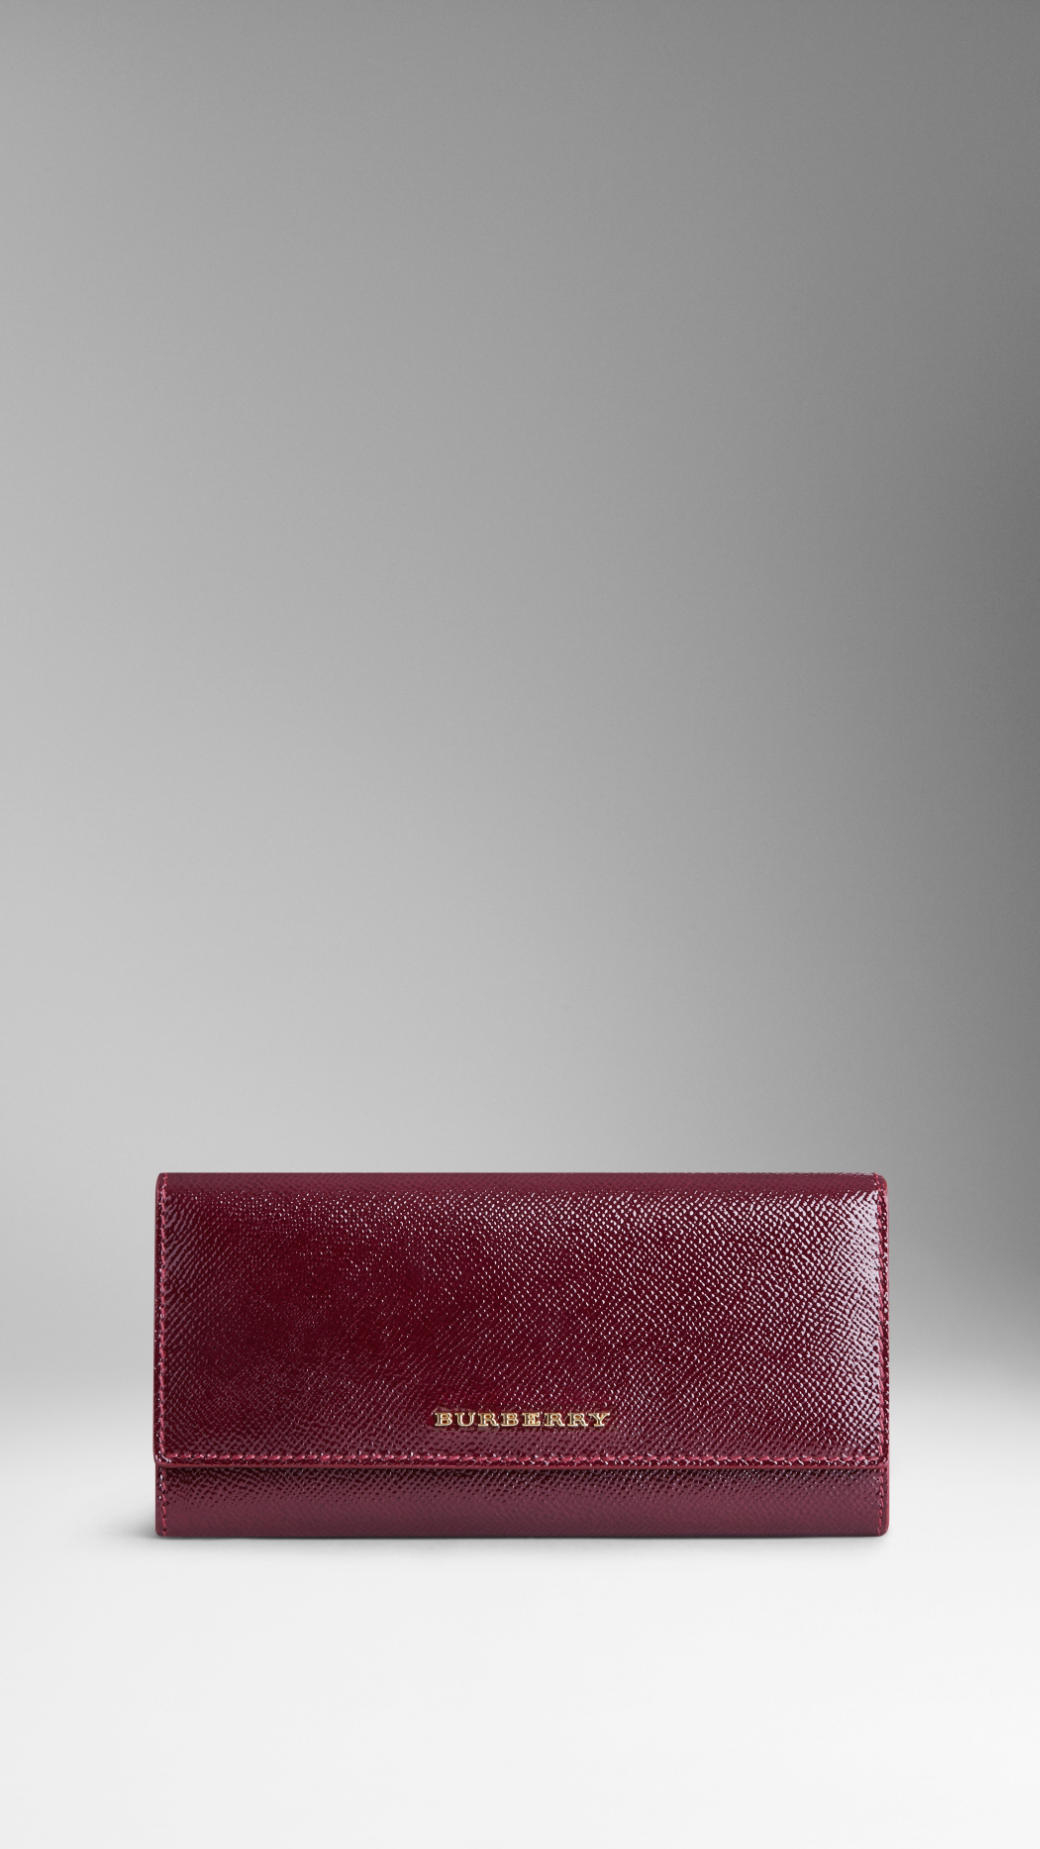 748fa317483c Lyst - Burberry Patent London Leather Continental Wallet in Red